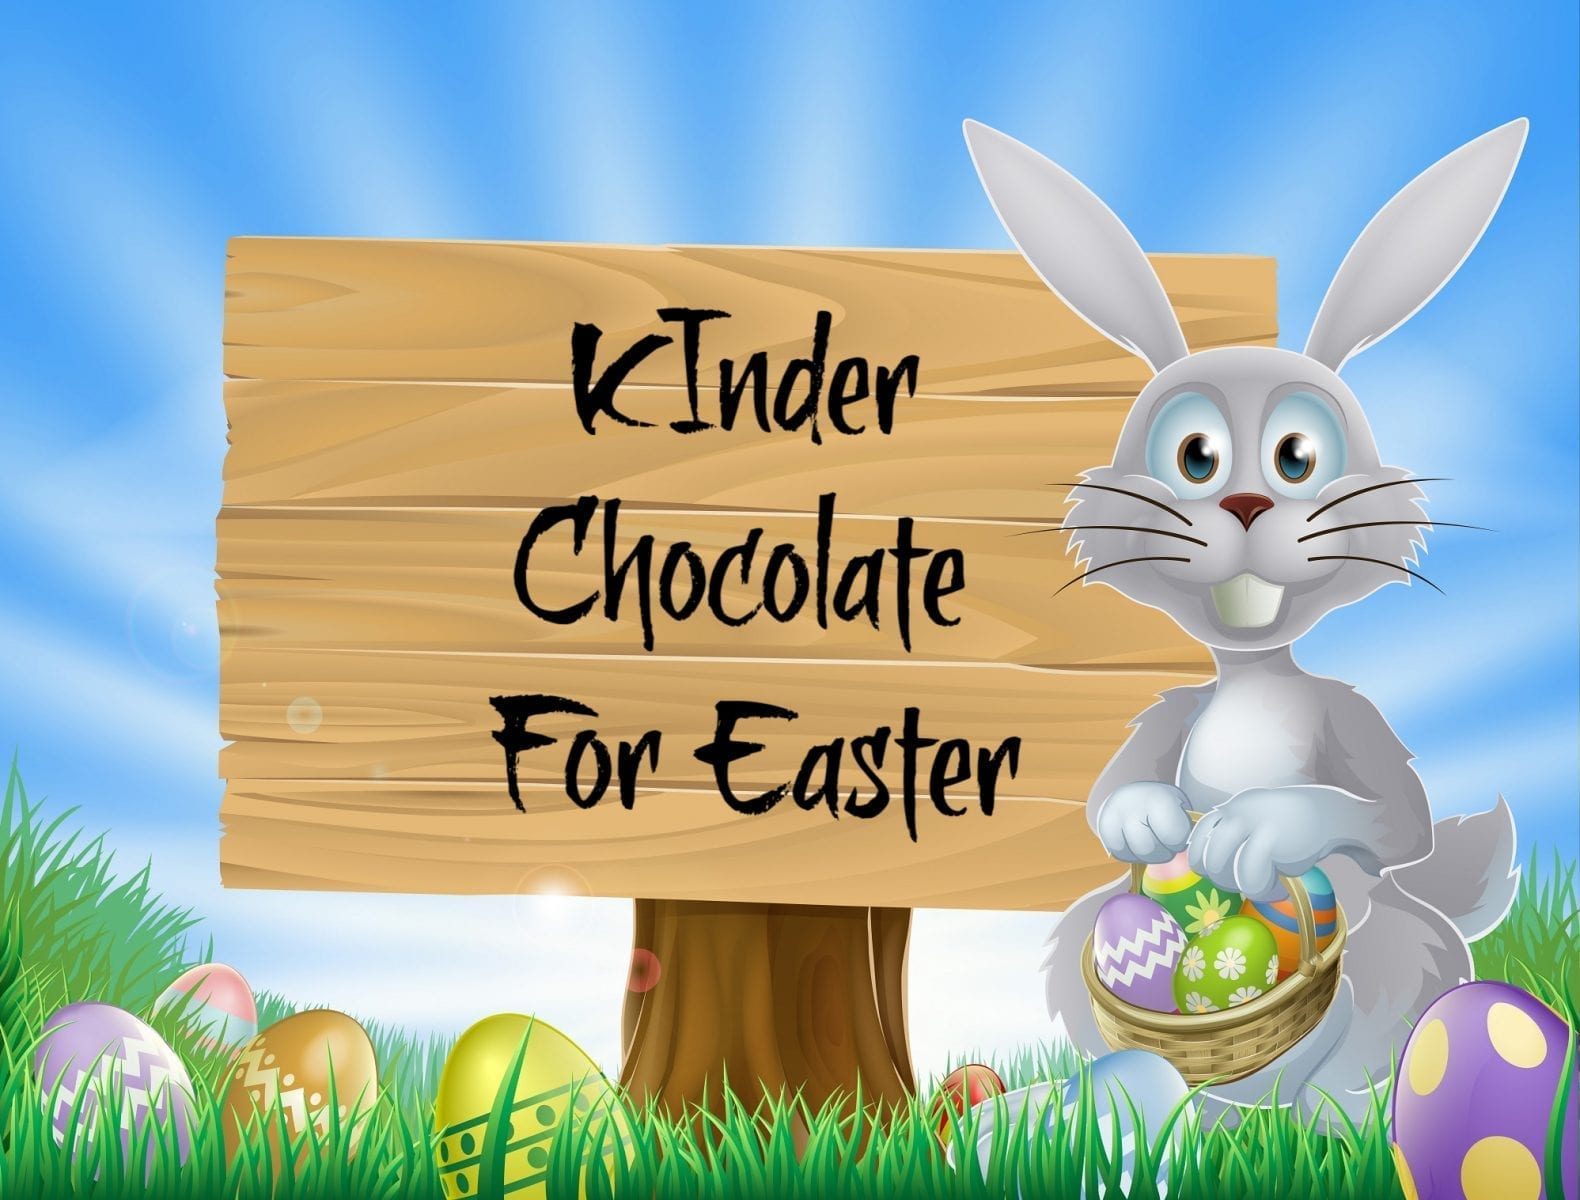 Kinder for Easter- Fill the Easter Basket with Kinder Chocolate